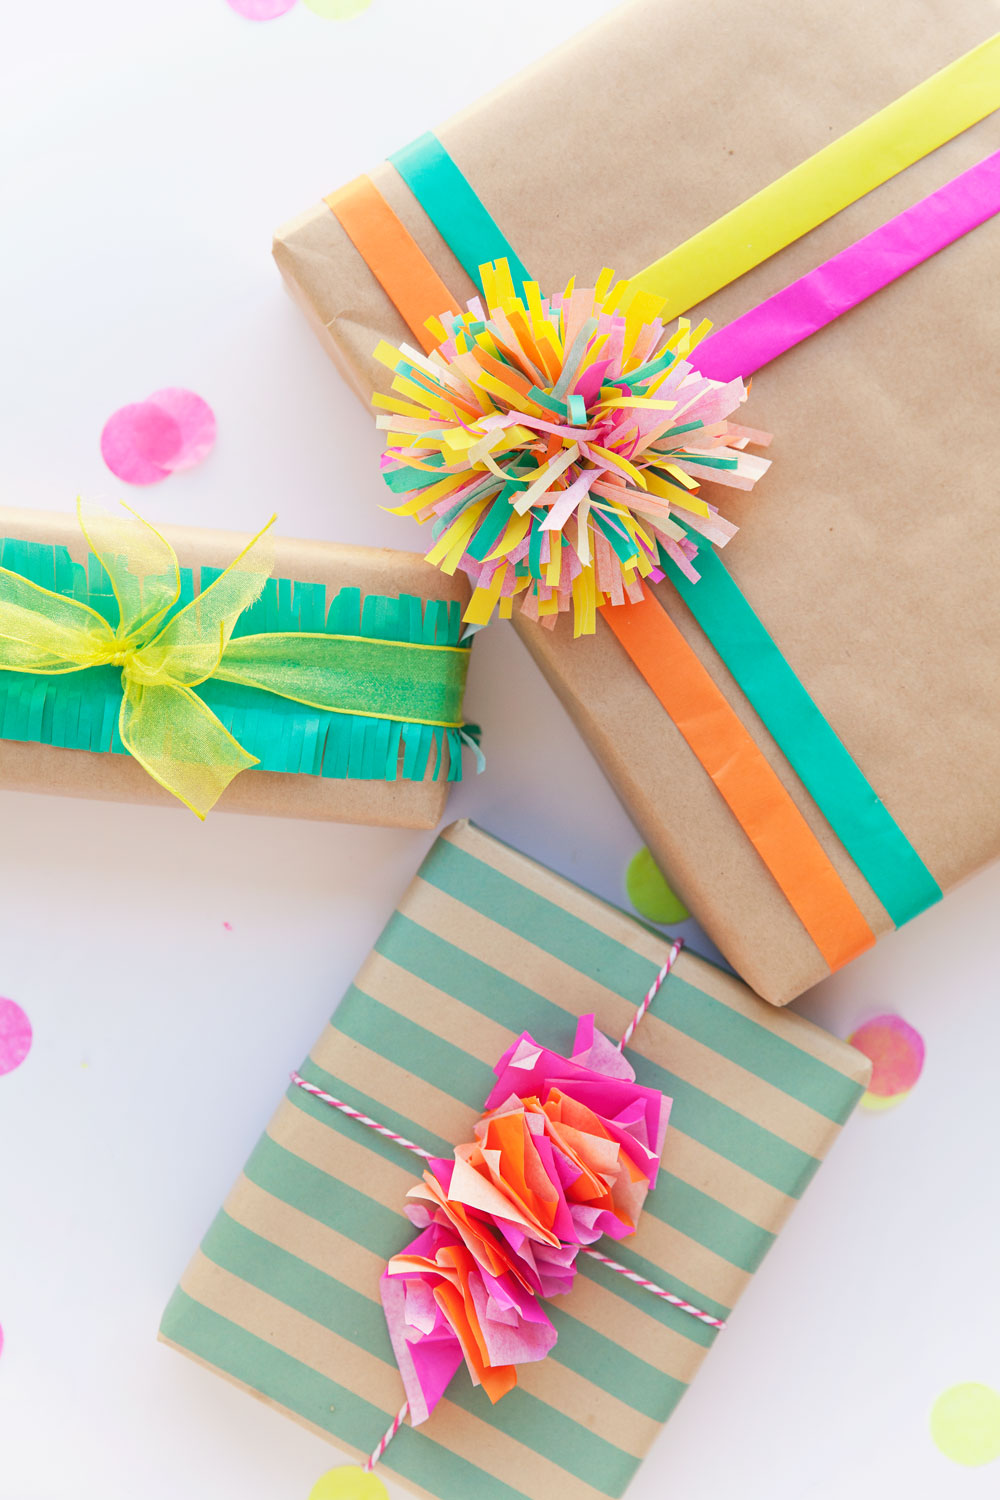 3 FUN WAYS TO WRAP WITH TISSUE PAPER